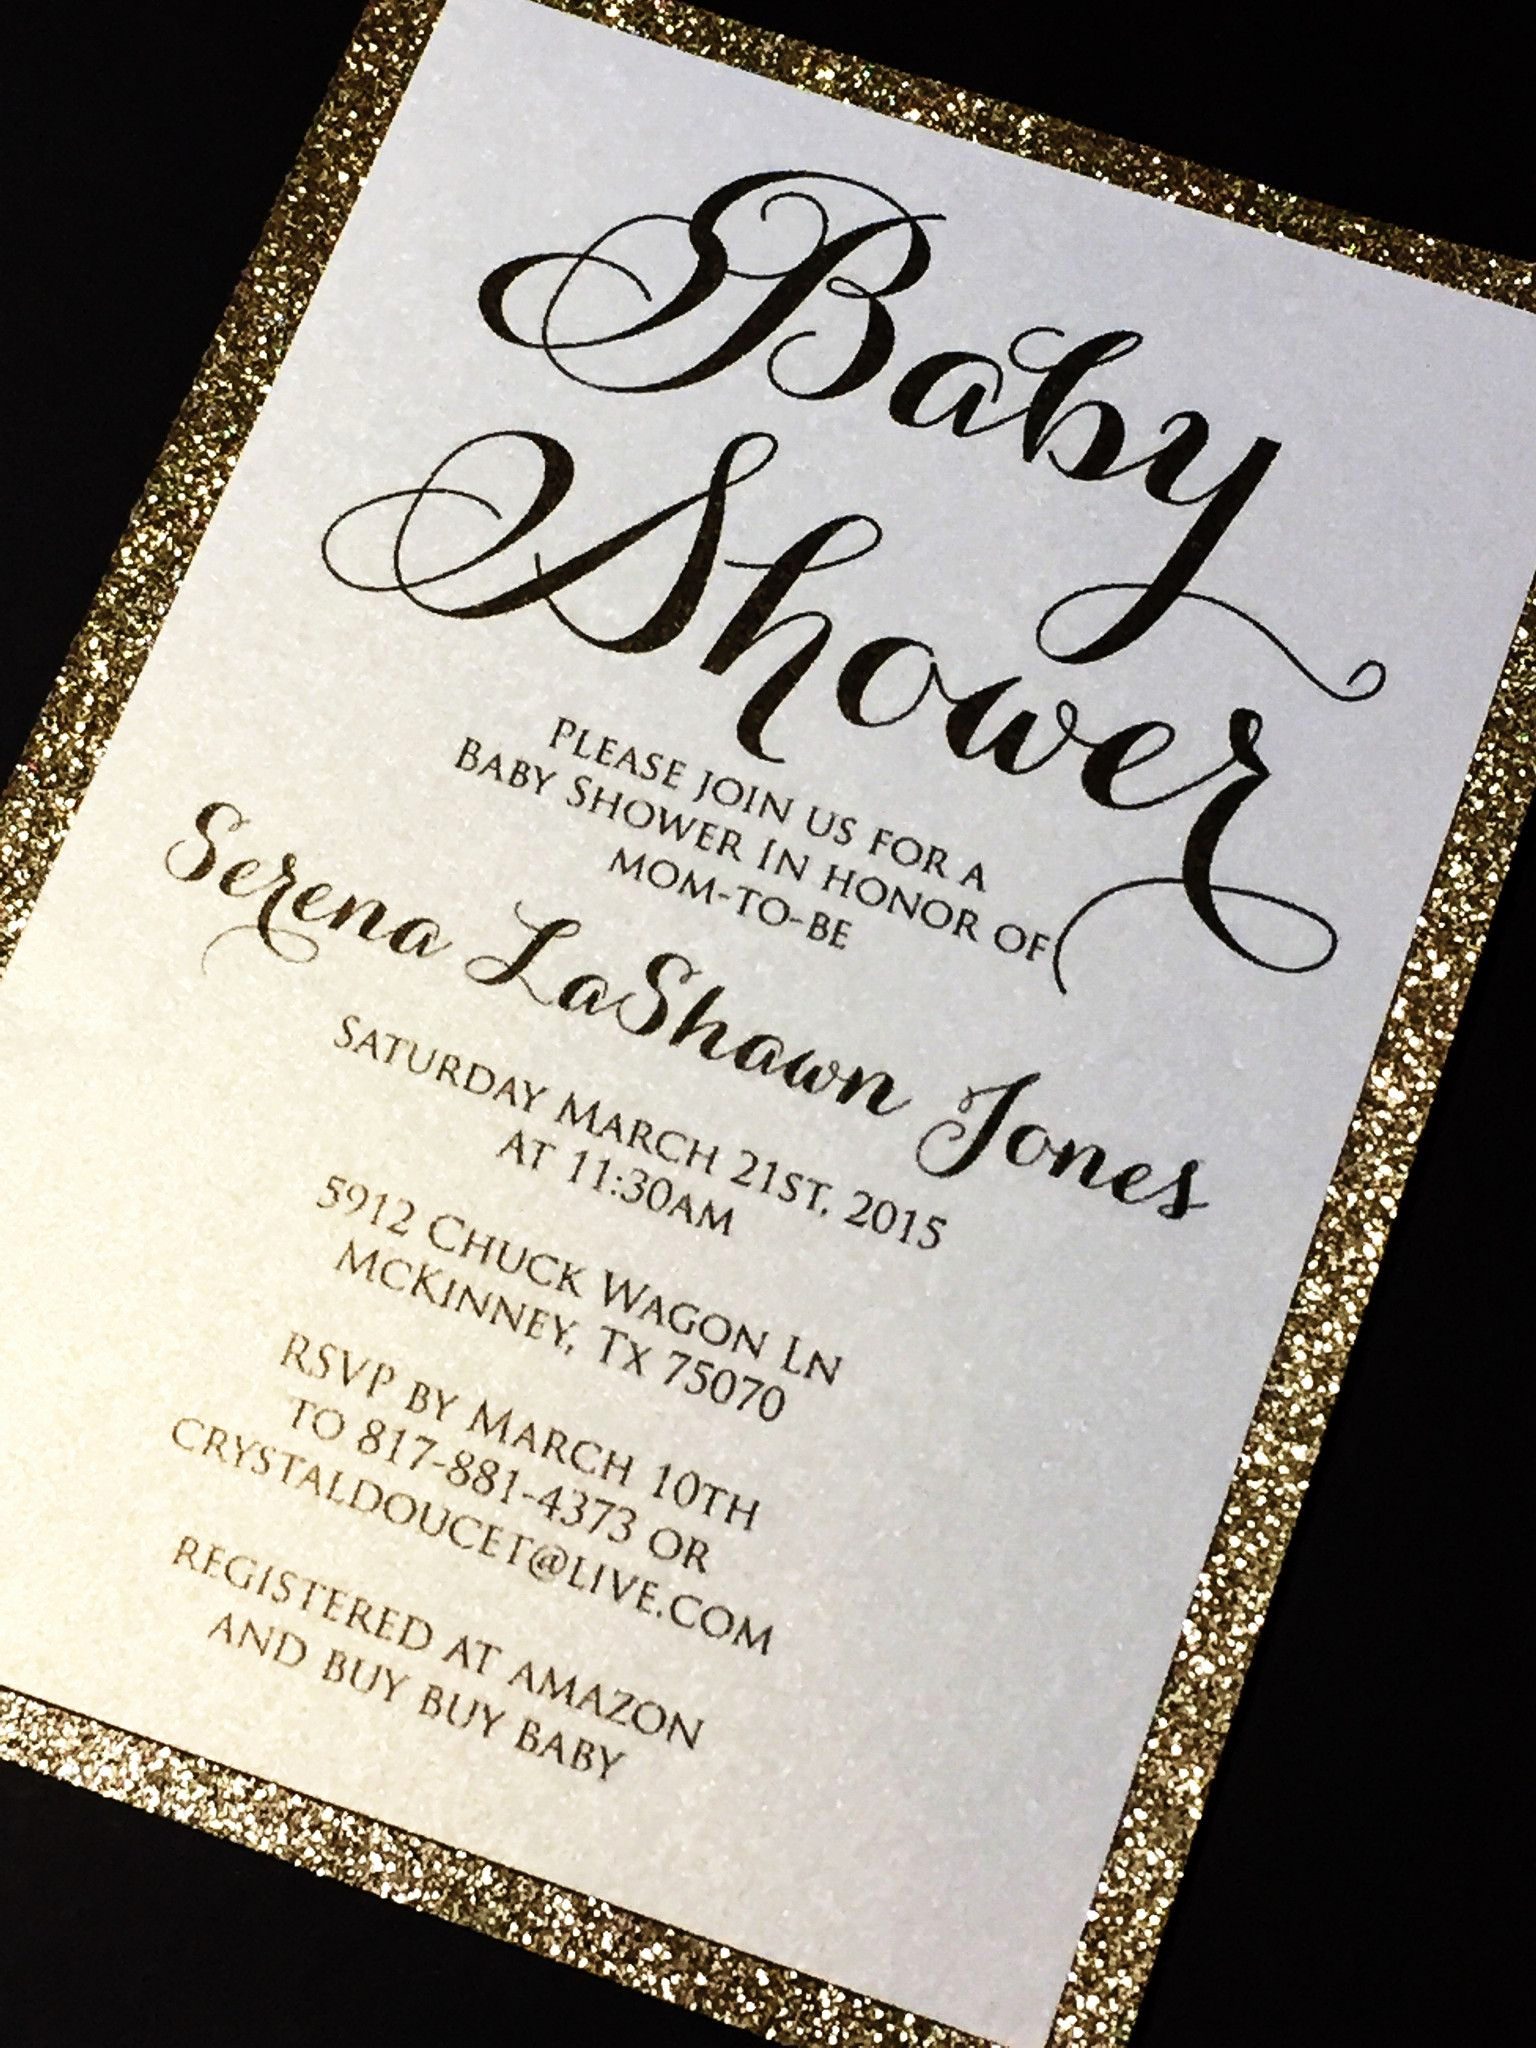 Baby Shower Pics for Invitation Luxury Glitter Baby Shower Invitations Elegant Baby Shower